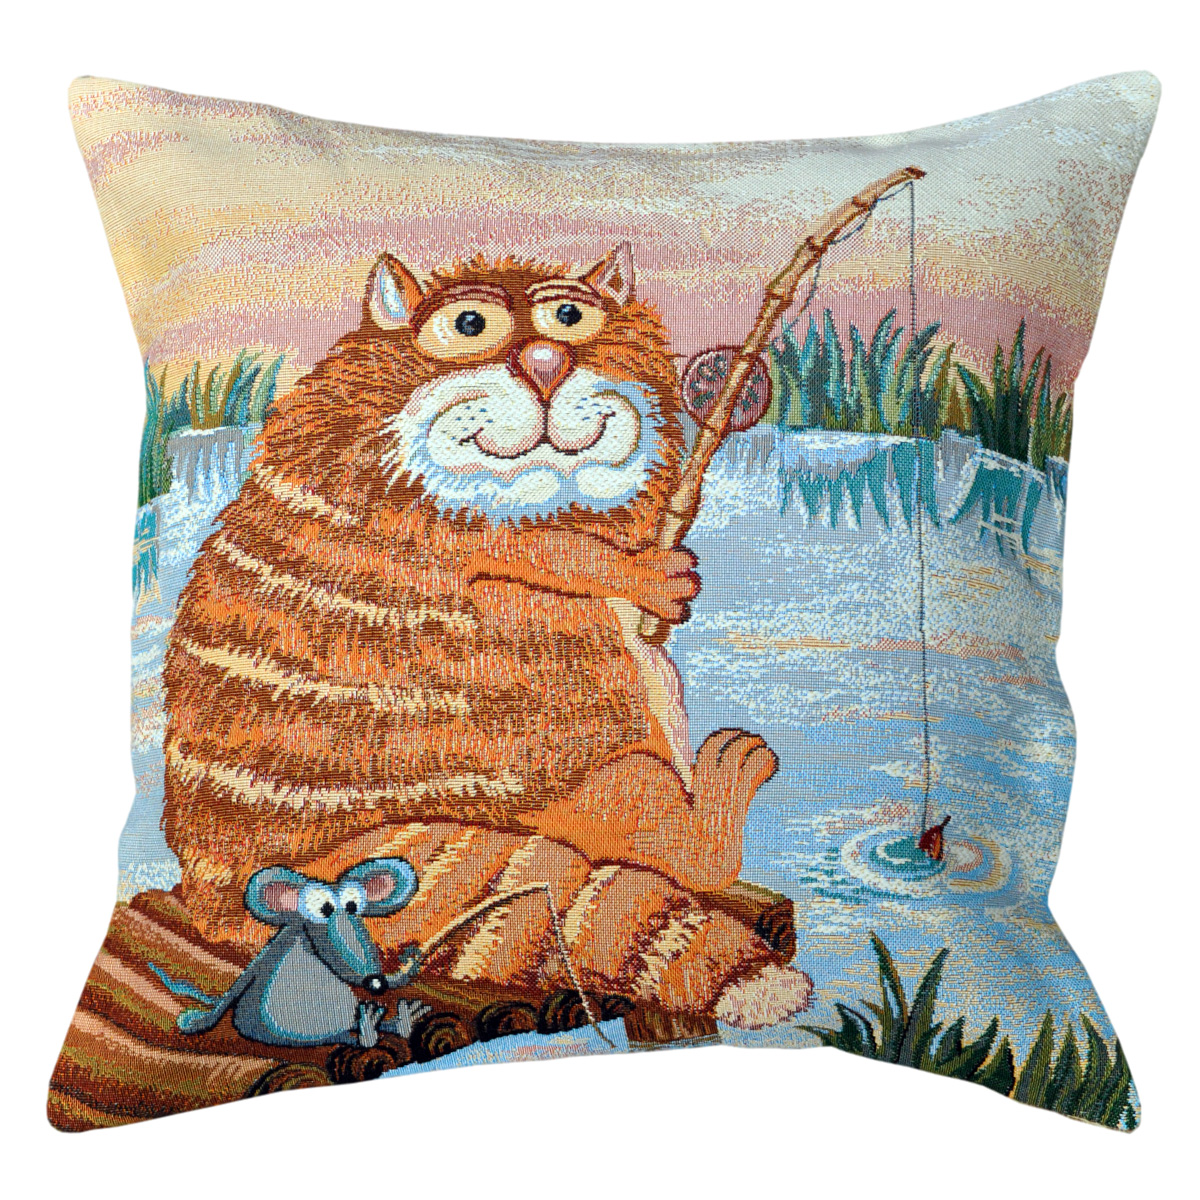 Fishing Tapestry Cushion - 50x50cm